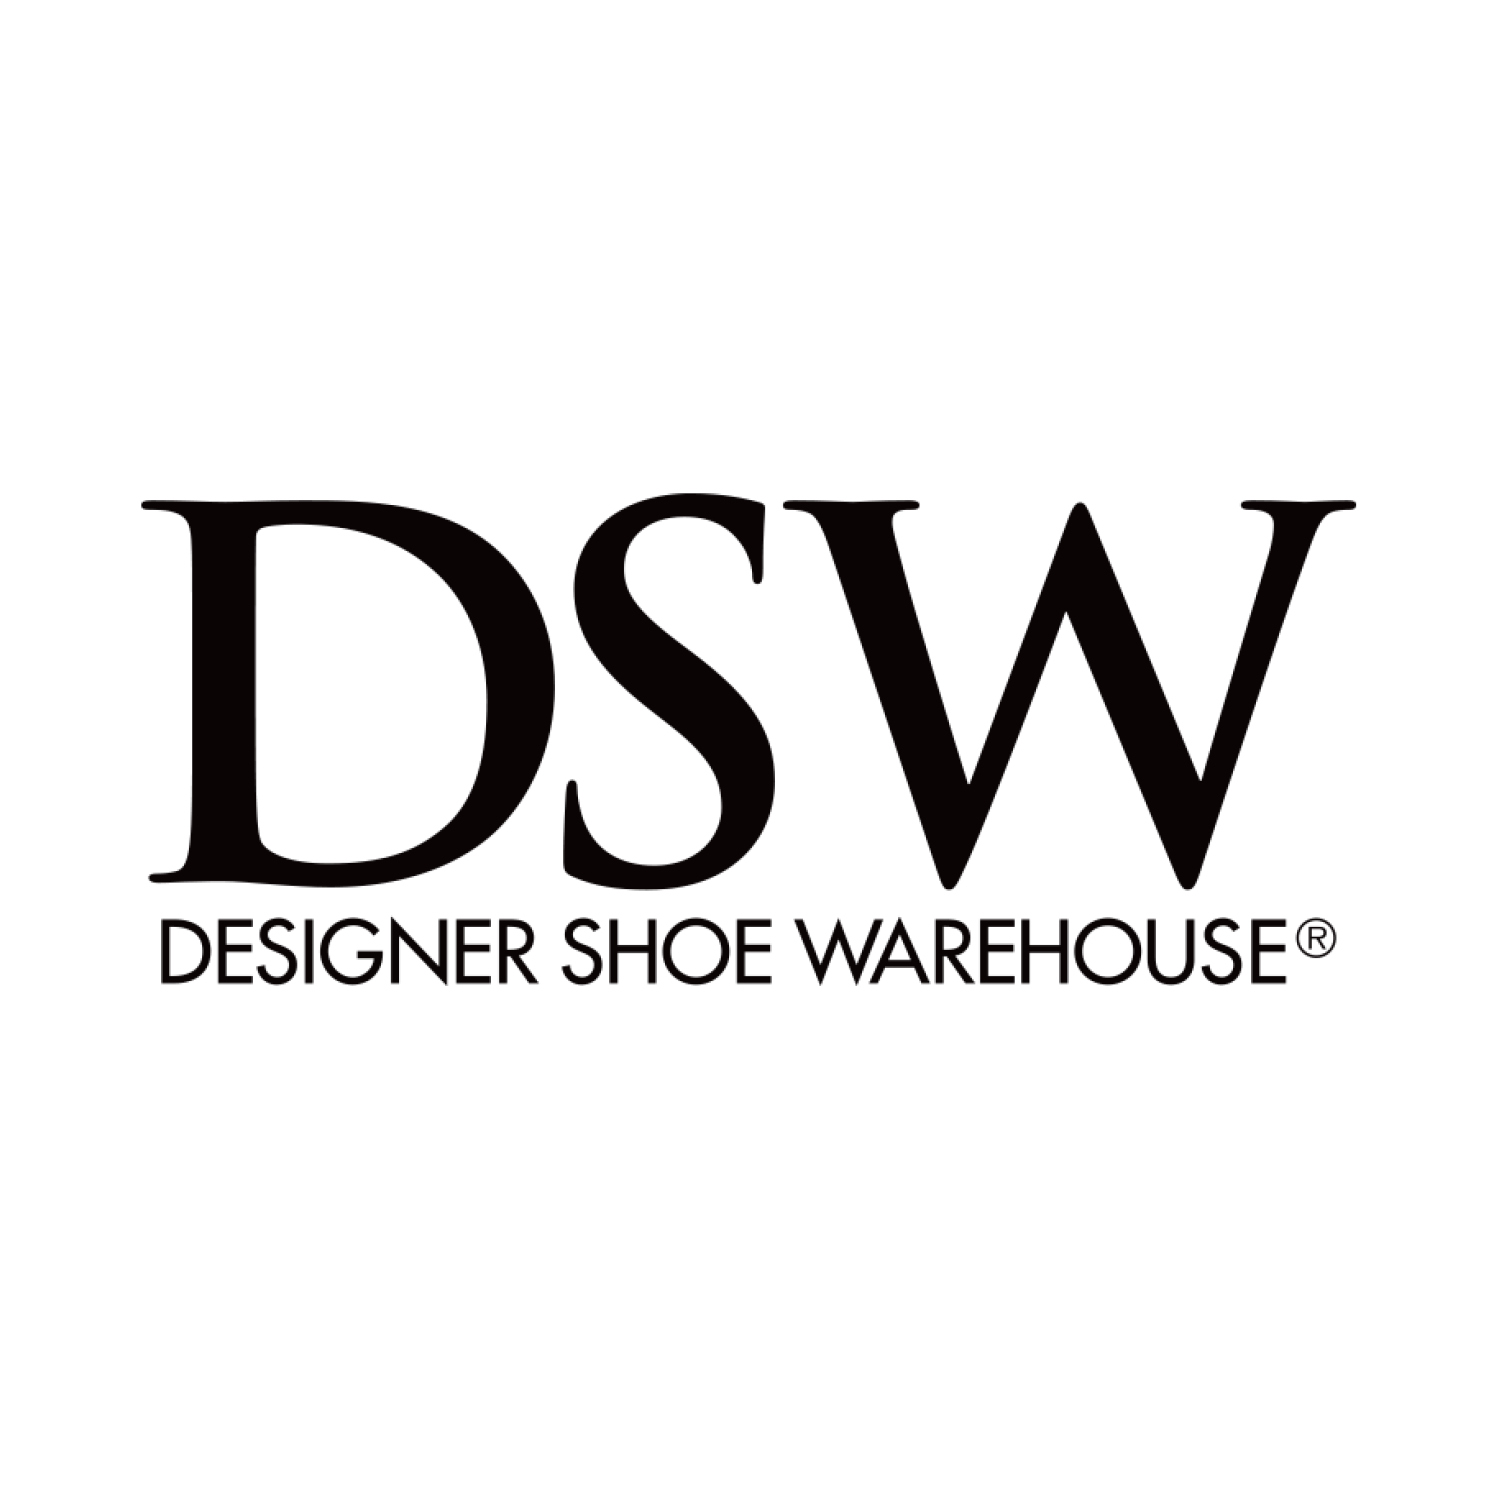 DSW Menu Sign - Price Points: $59.99 - FR